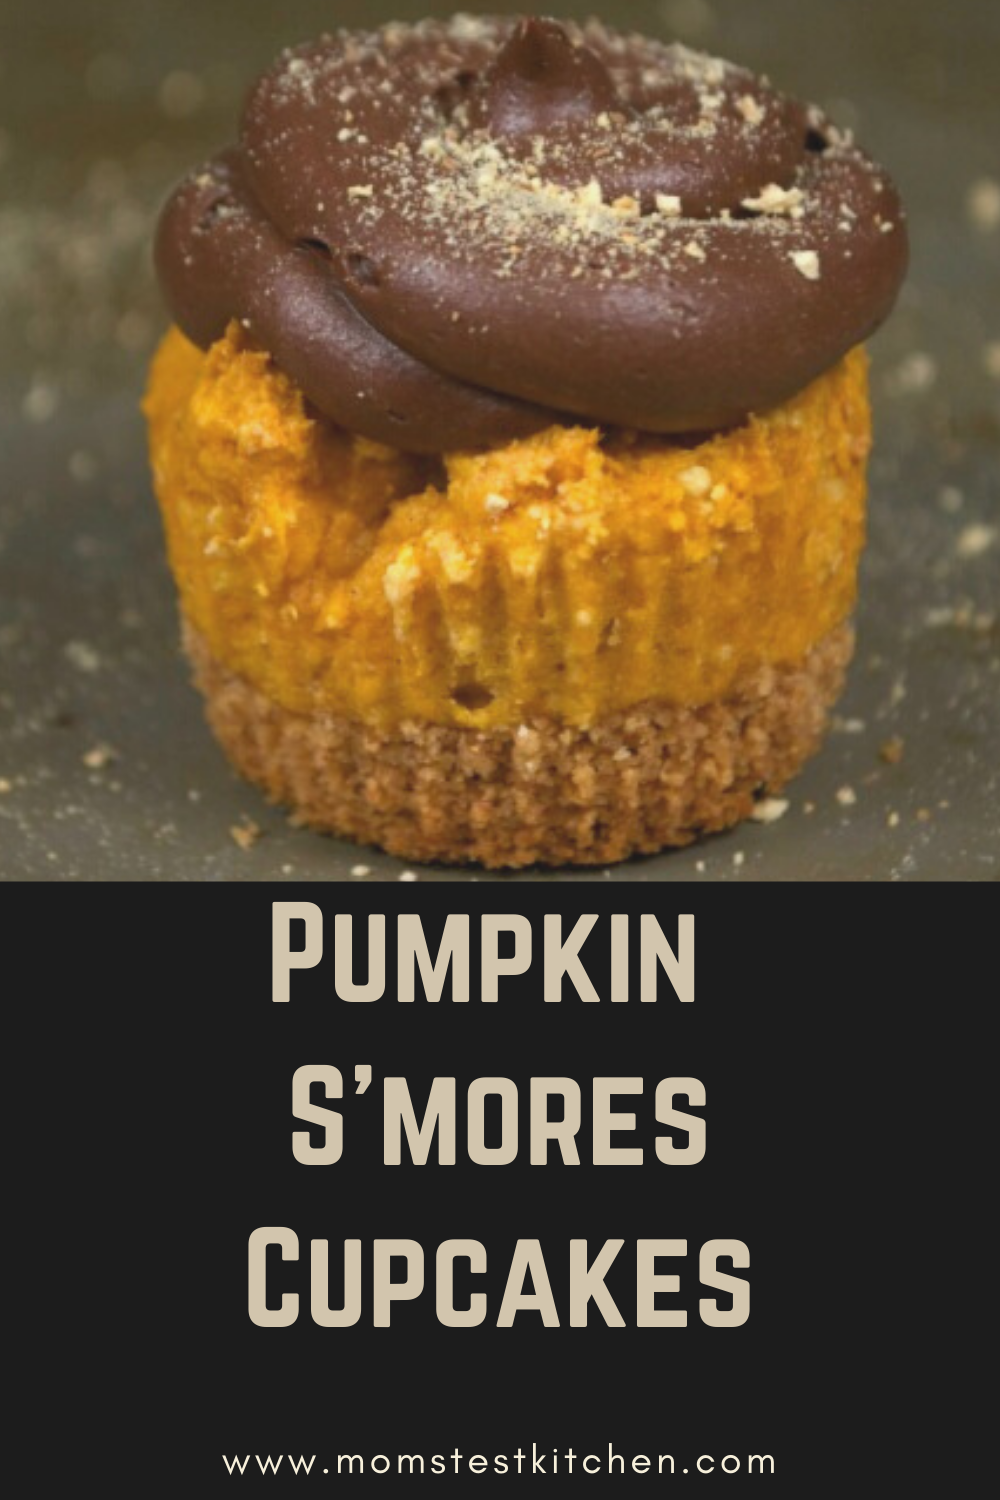 These Pumpkin S'mores Cupcakes combine everyone's favorite summertime treat with a classic Fall flavor for an easy and delicious dessert!